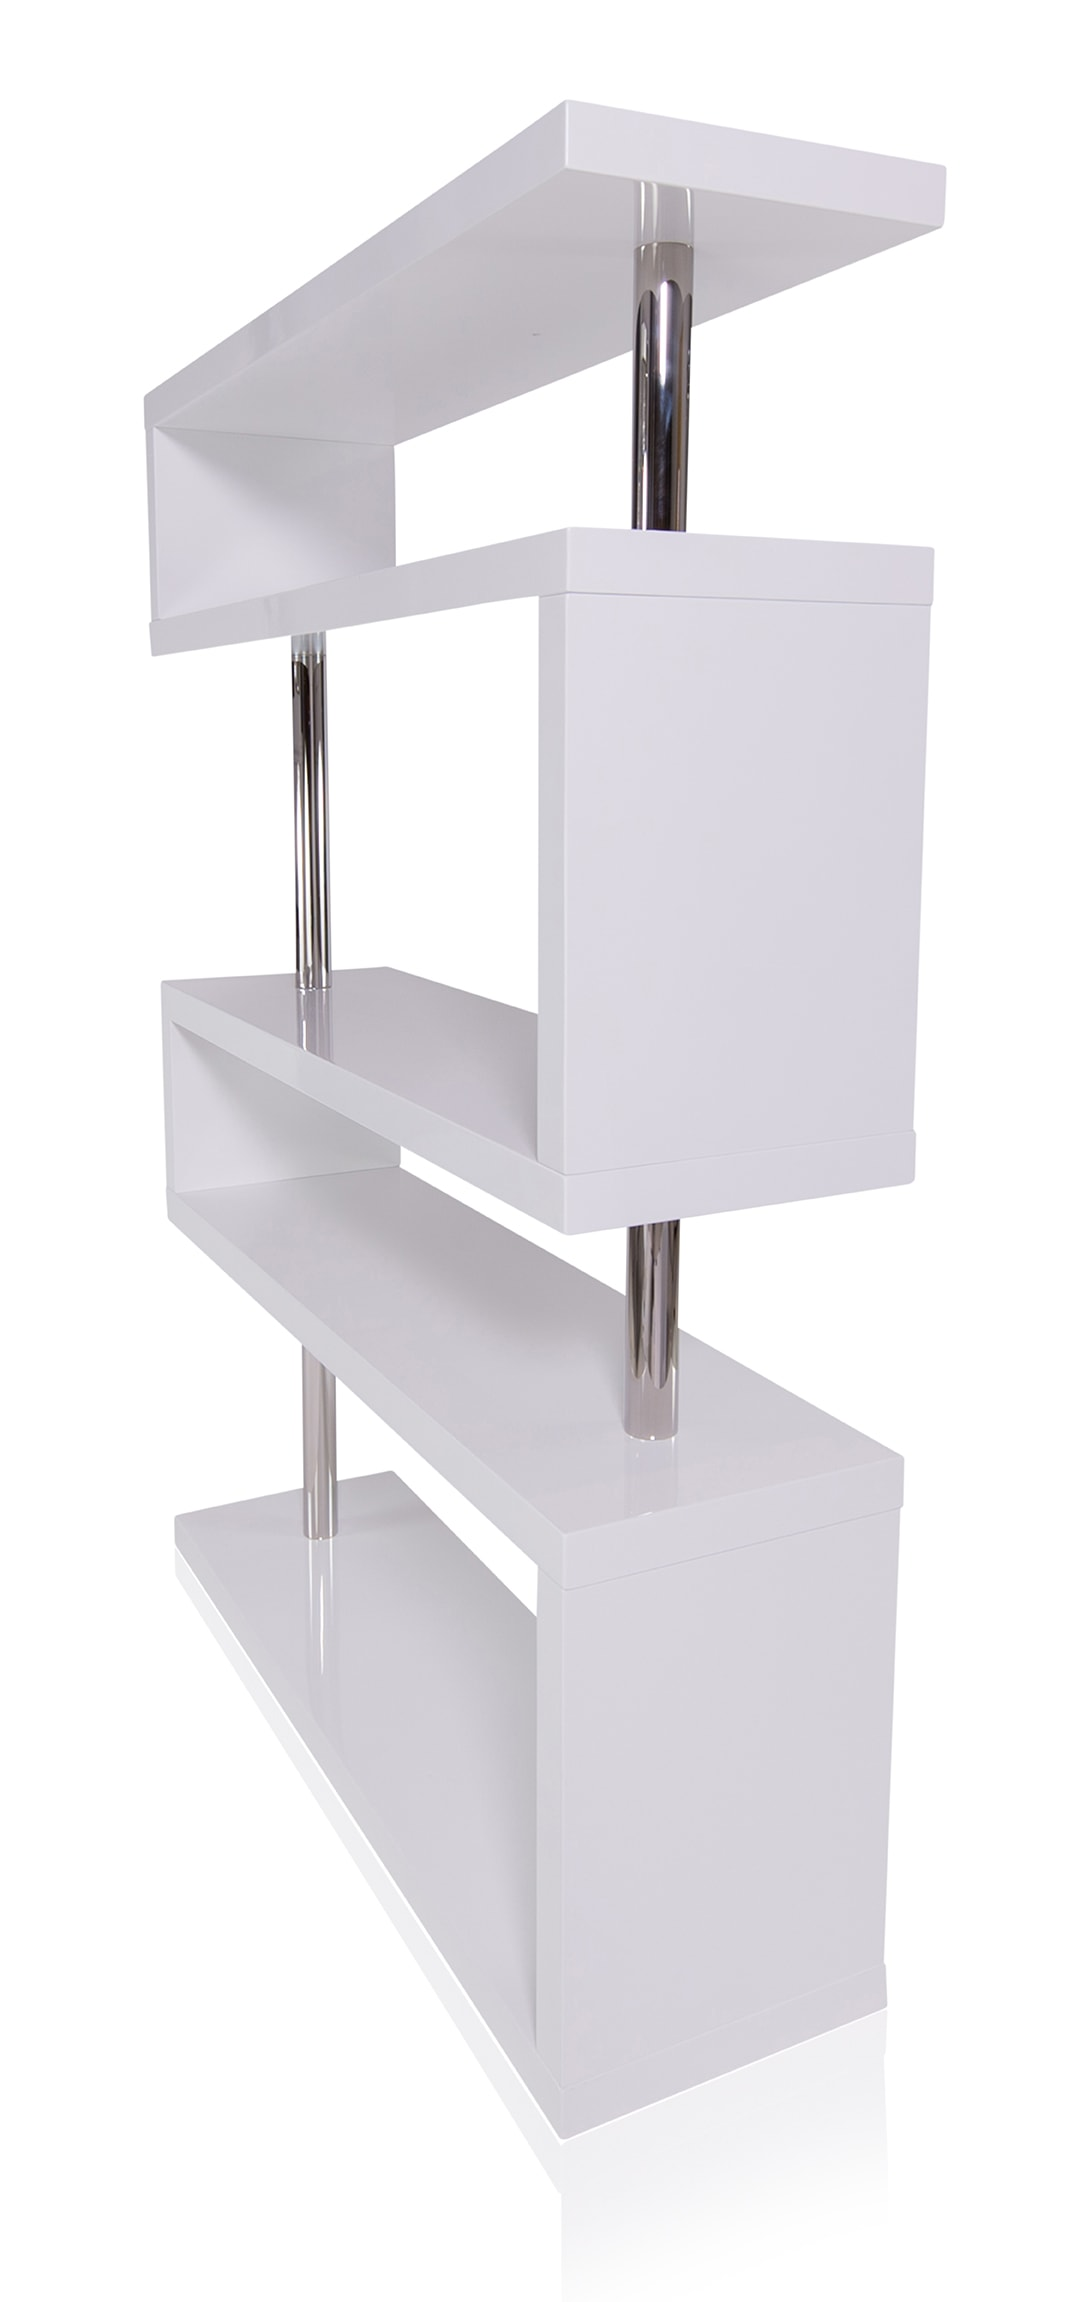 Edan Mid Century Modern Shelf White